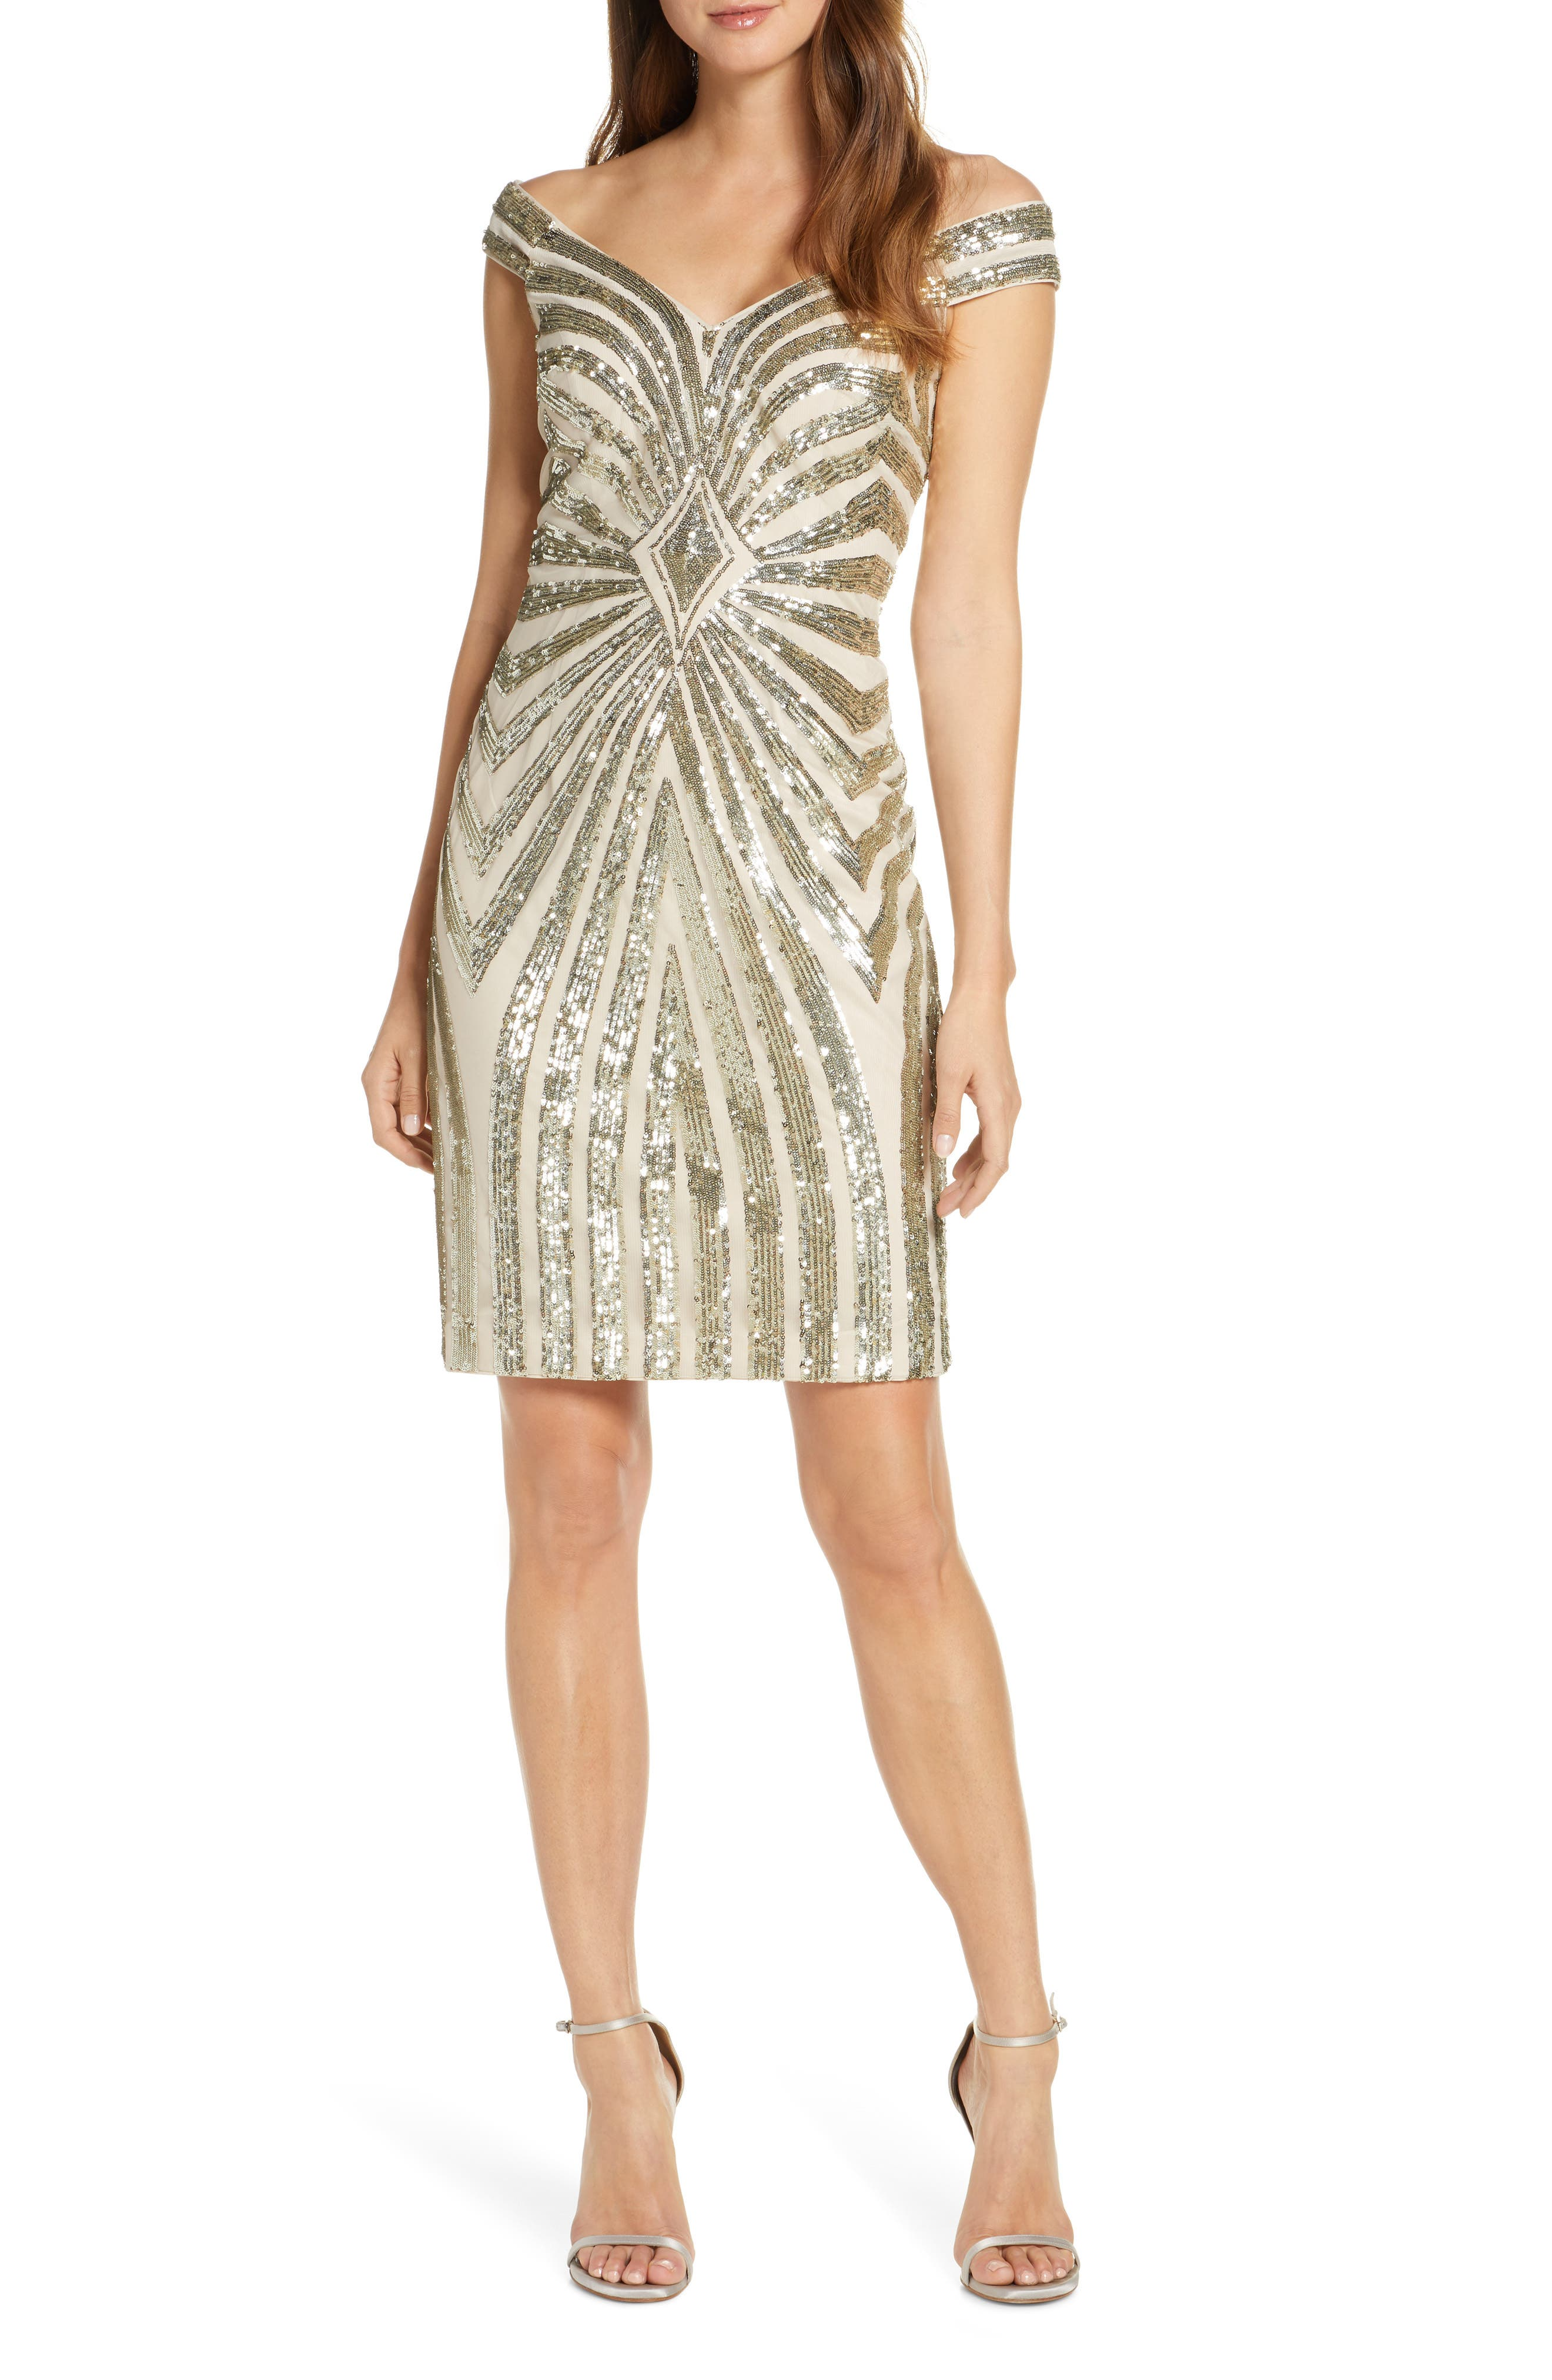 Vintage Cocktail Dresses, Party Dresses Womens Vince Camuto Off The Shoulder Body-Con Dress $188.00 AT vintagedancer.com